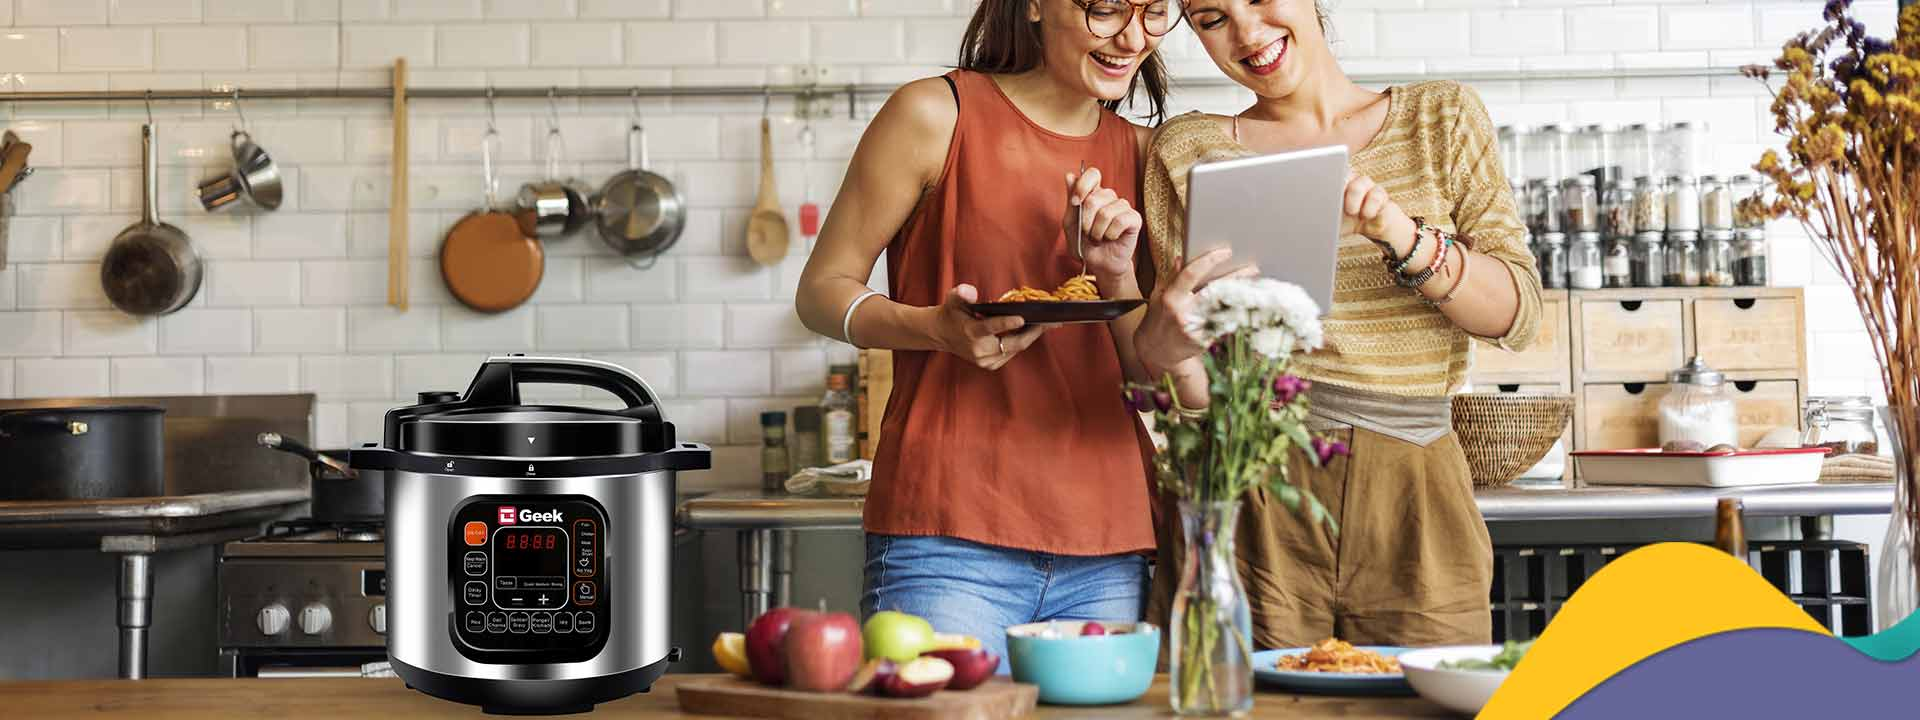 10 Smart Daily Hacks to Use Your Robocook